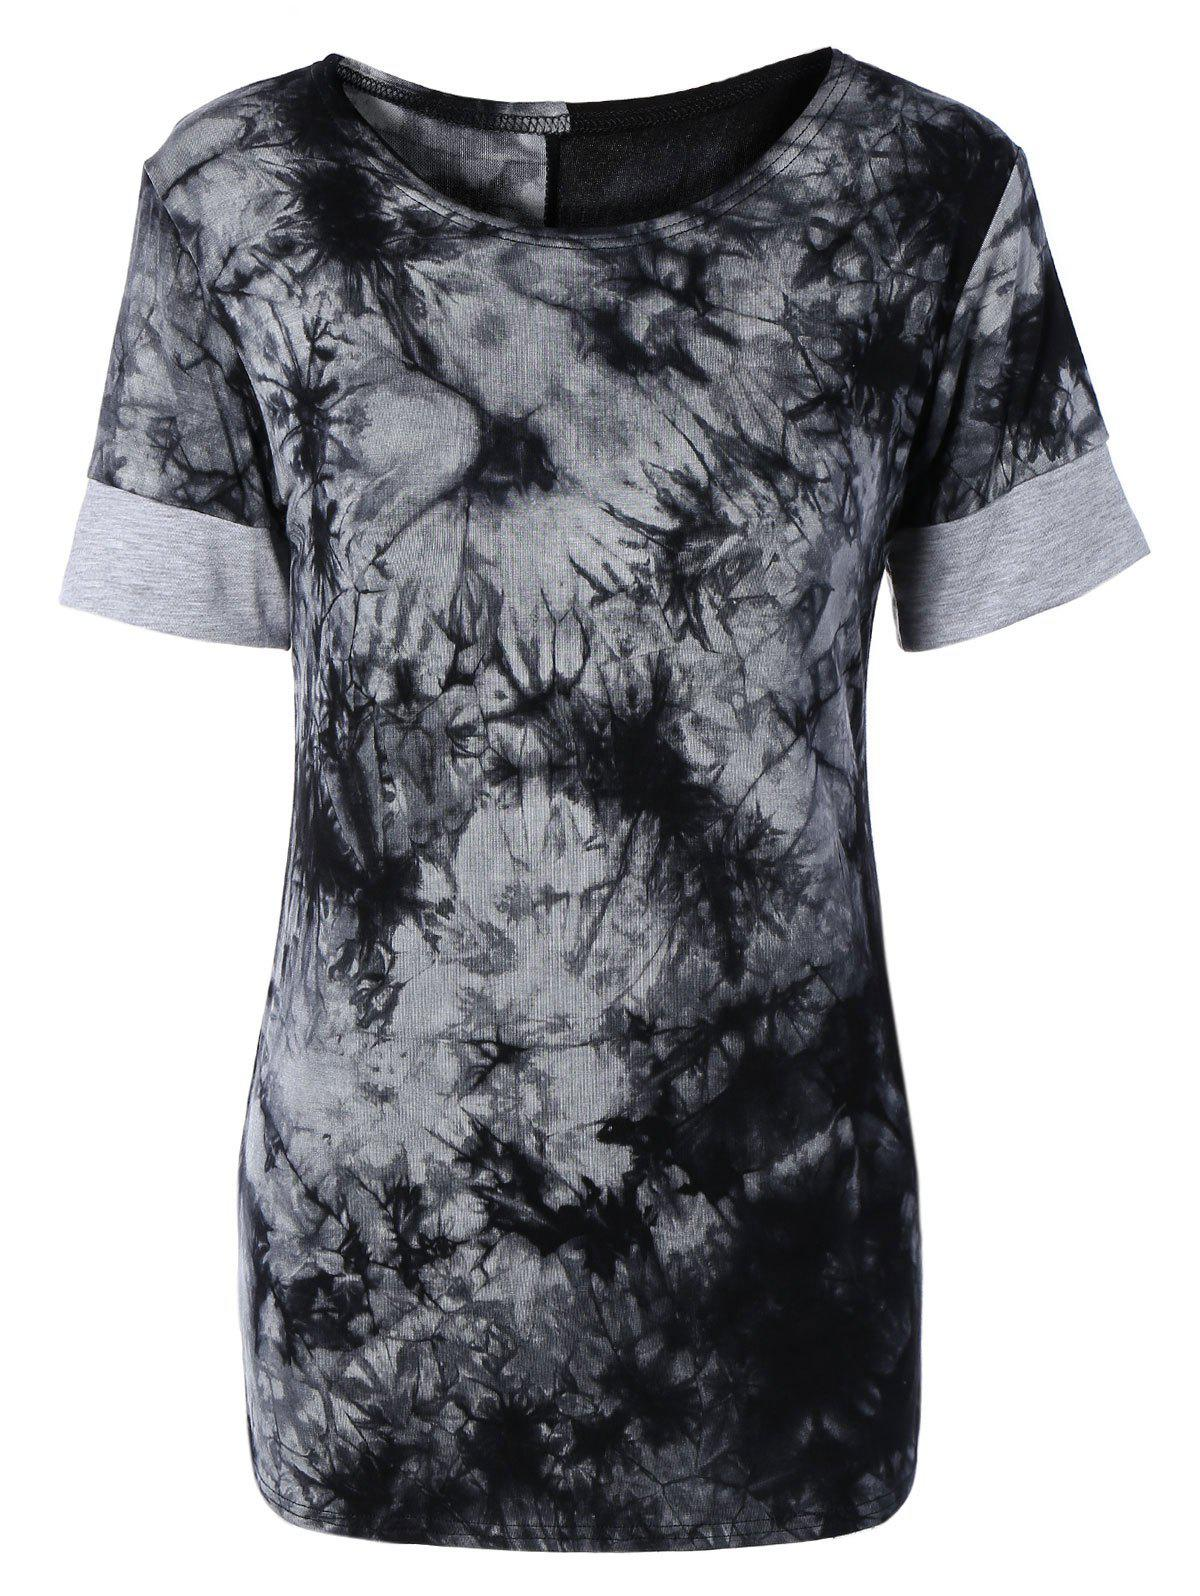 Trendy Short Sleeve Tie-Dye Spliced Women's T-Shirt - BLACK XL